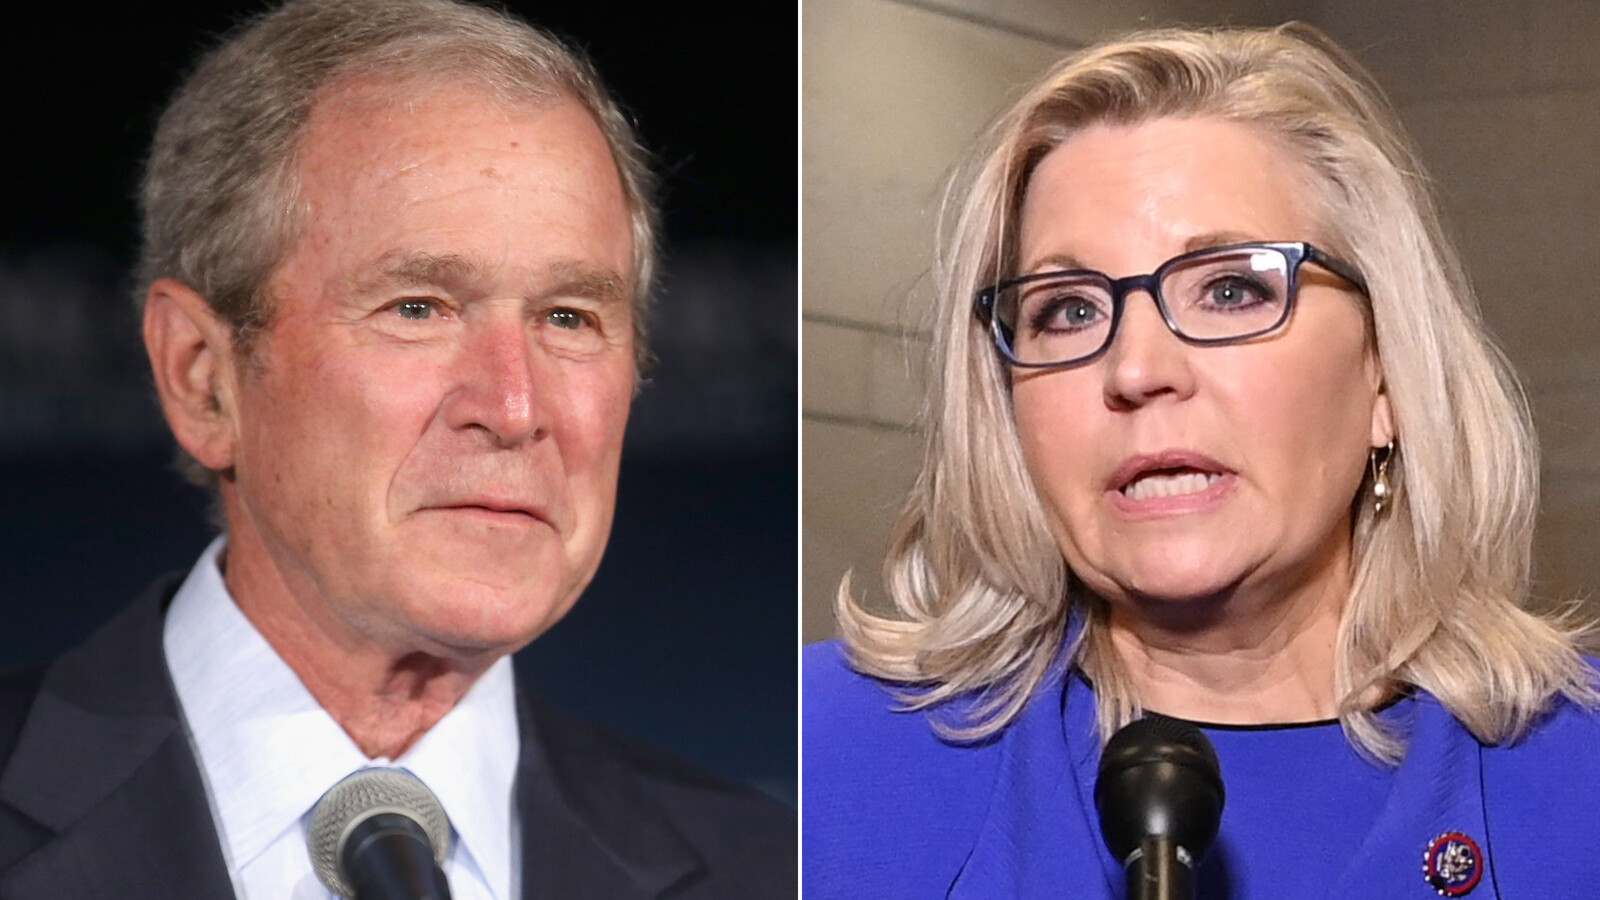 Former President George W. Bush to hold fundraiser next month for Liz Cheney